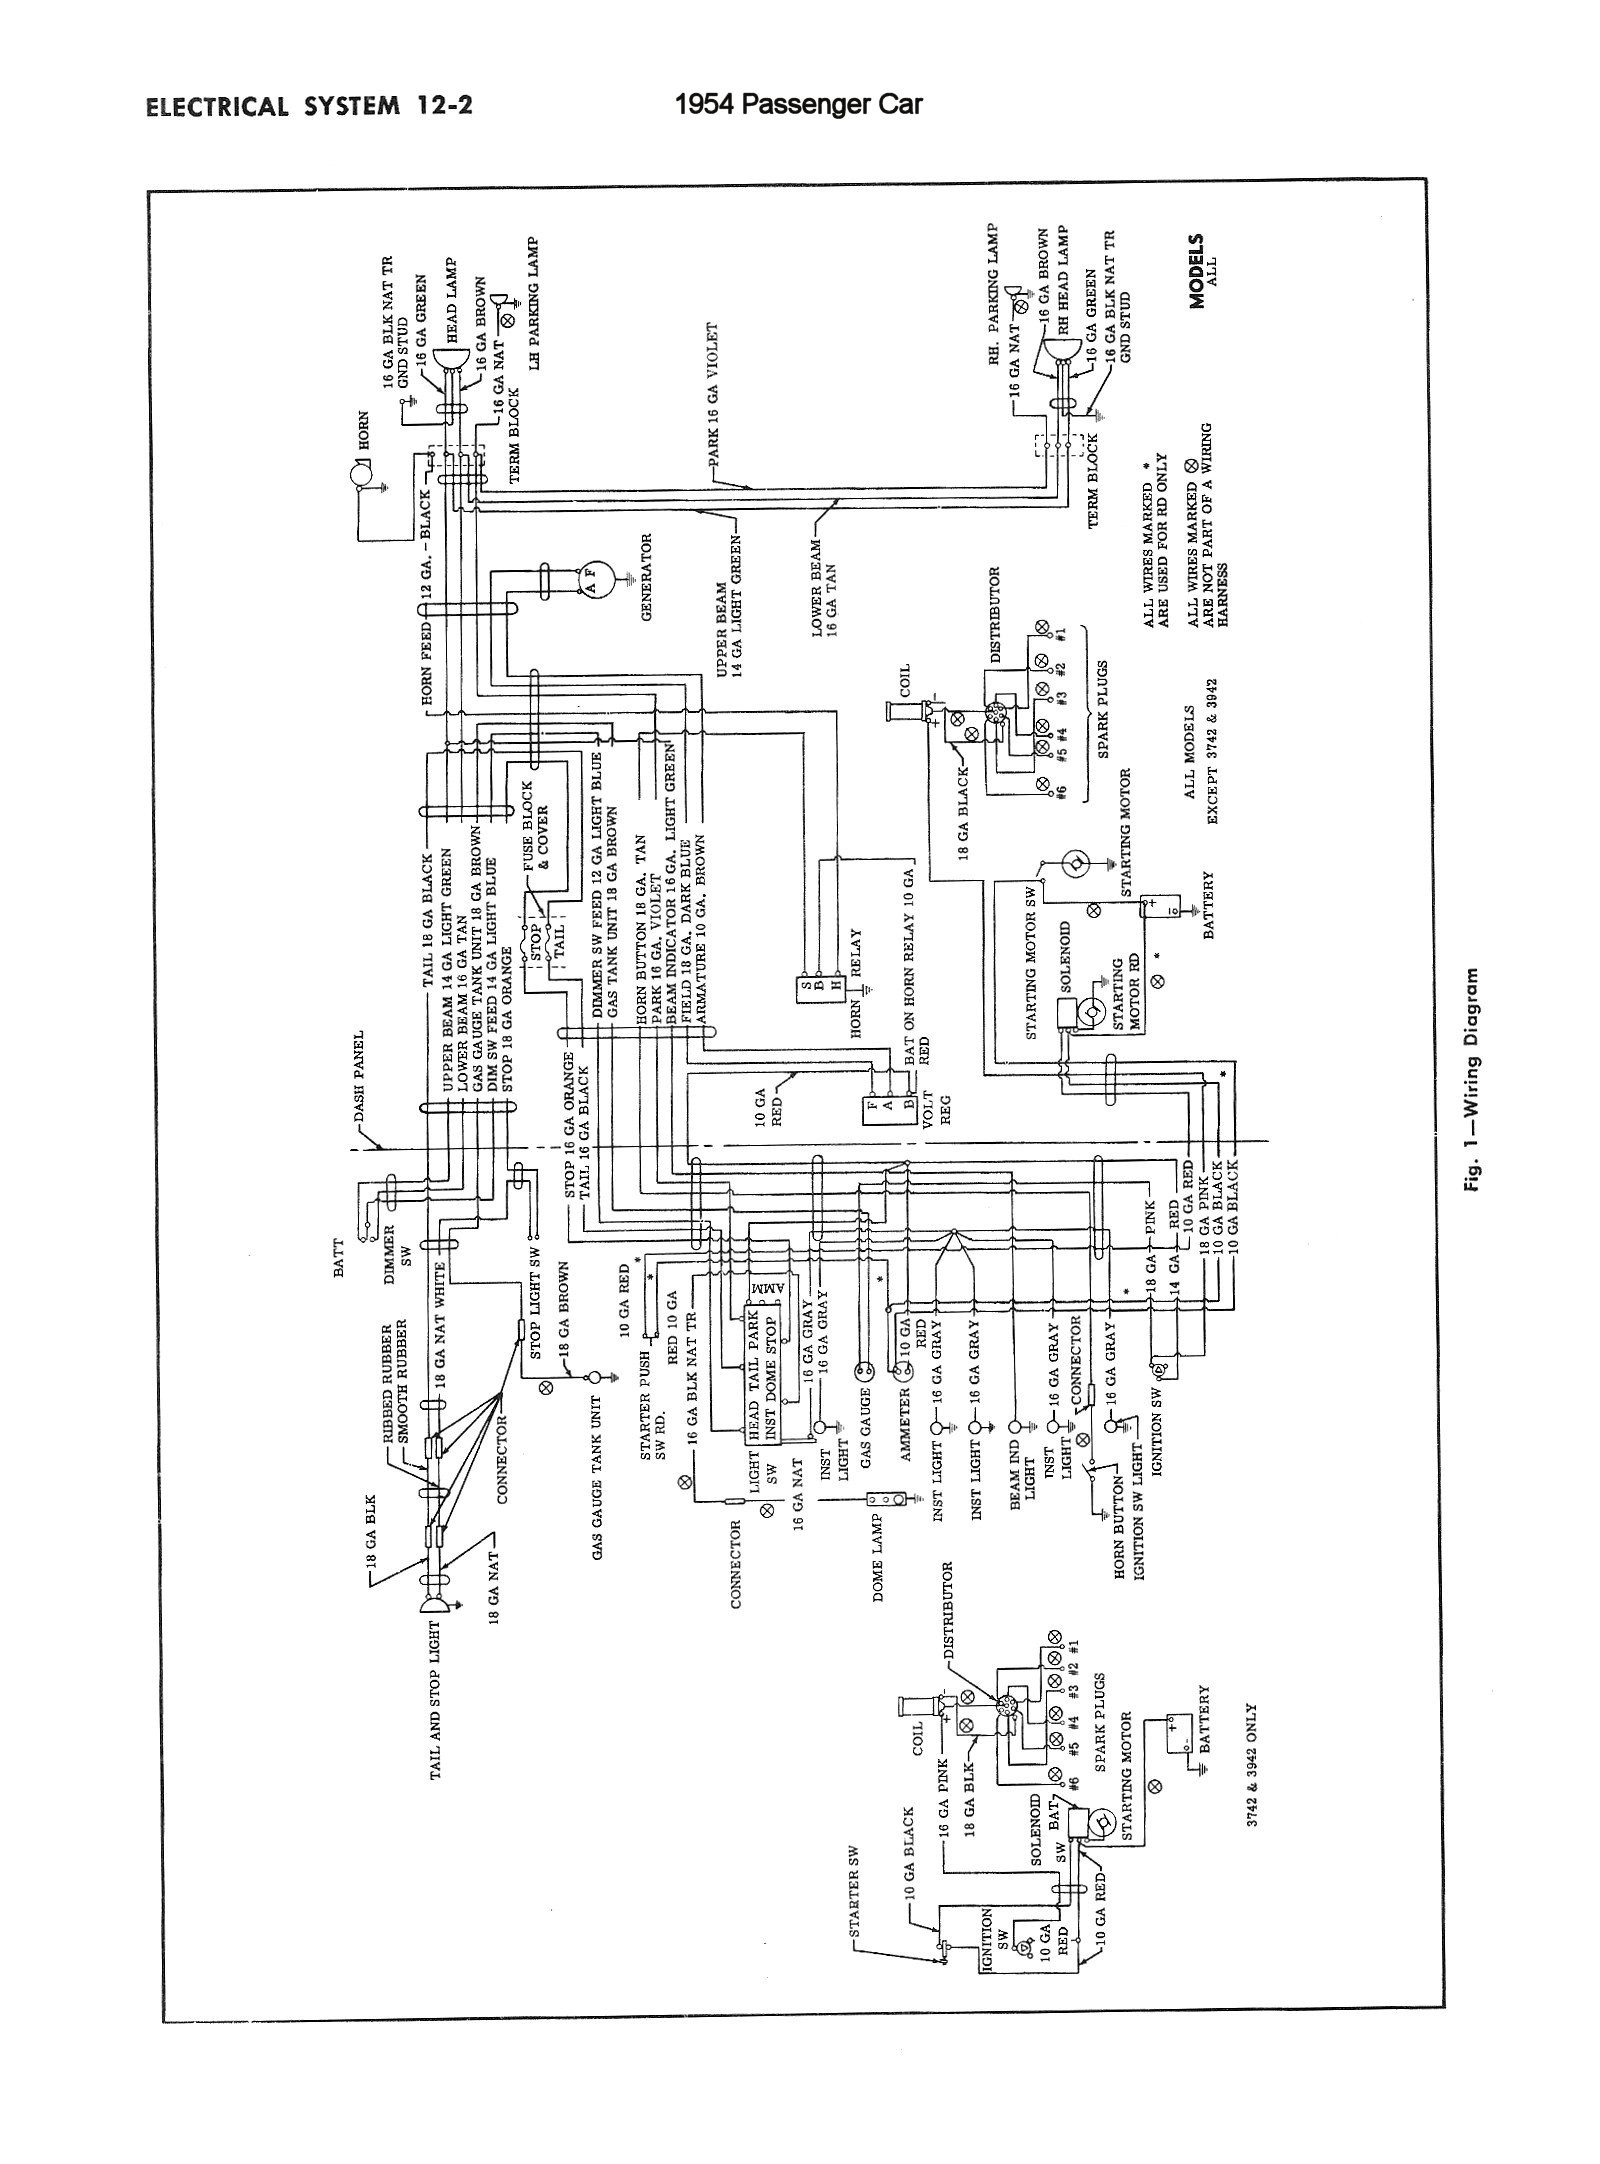 1953 dodge wiring diagram schema diagram preview 1951 Dodge Wiring Diagram